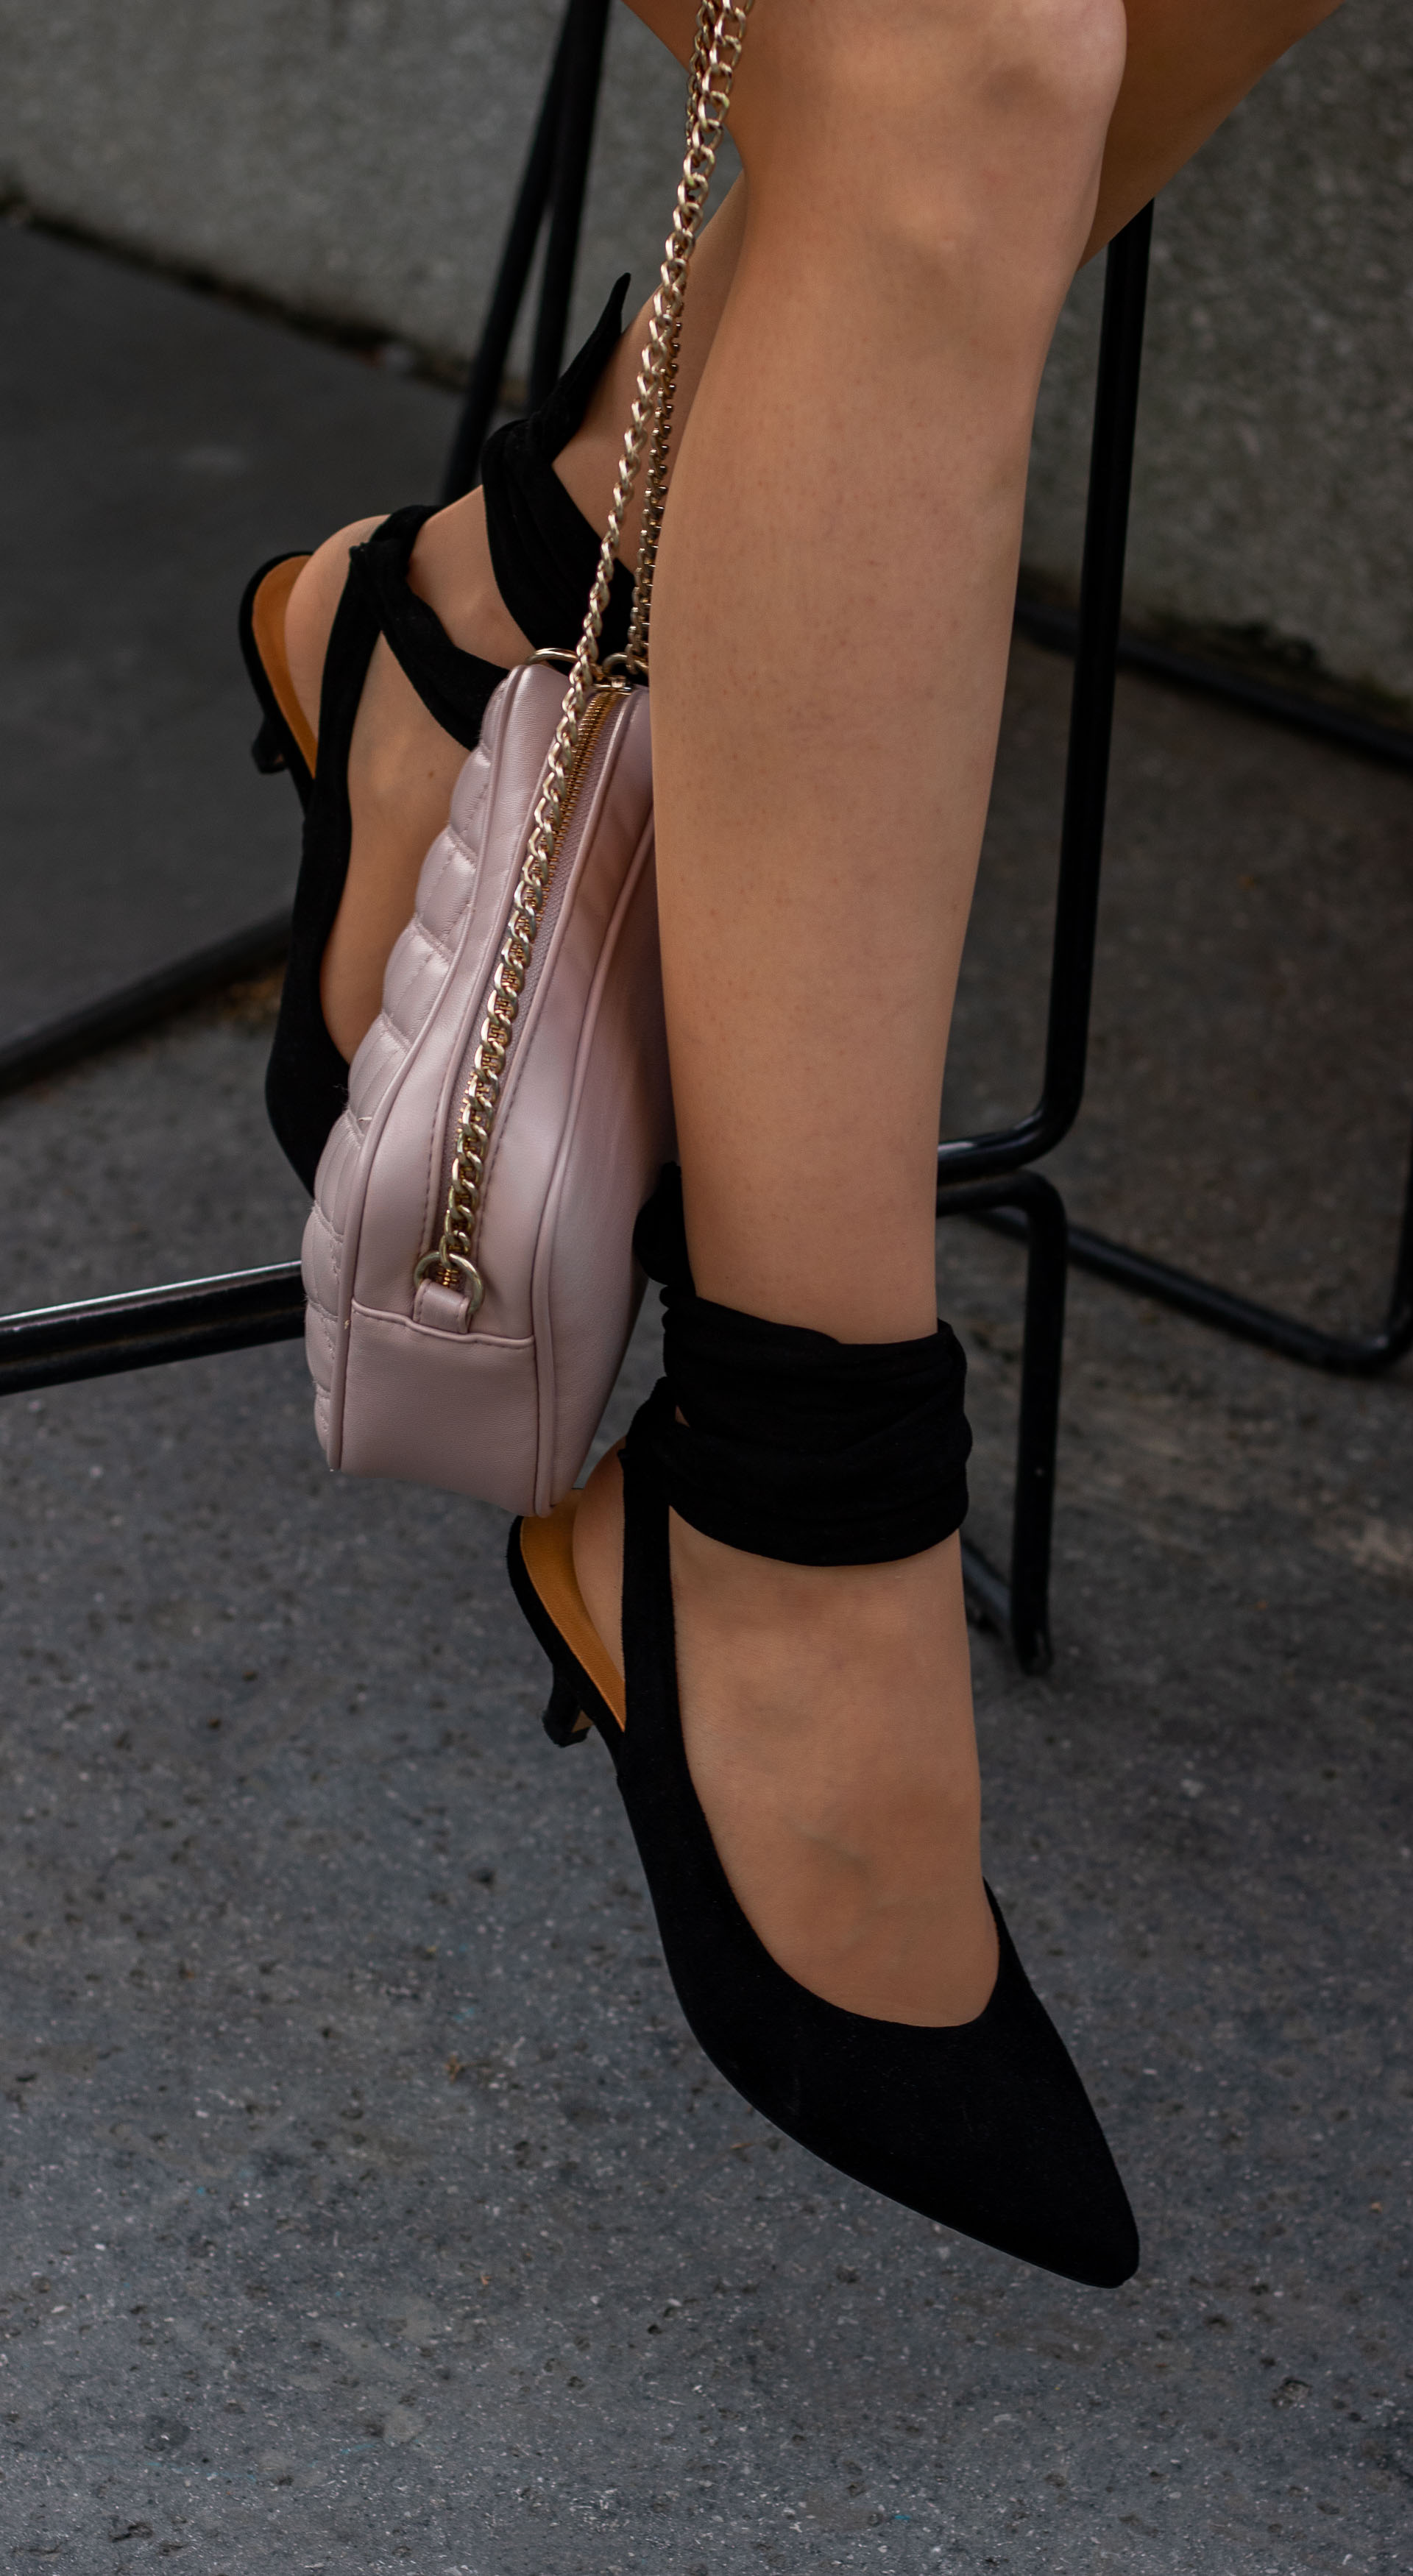 Beautiful Fashion Blogger Veronika Lipar of Brunette from Wall Street wearing Ganni Sabine pumps chain shoulder bag at after work party